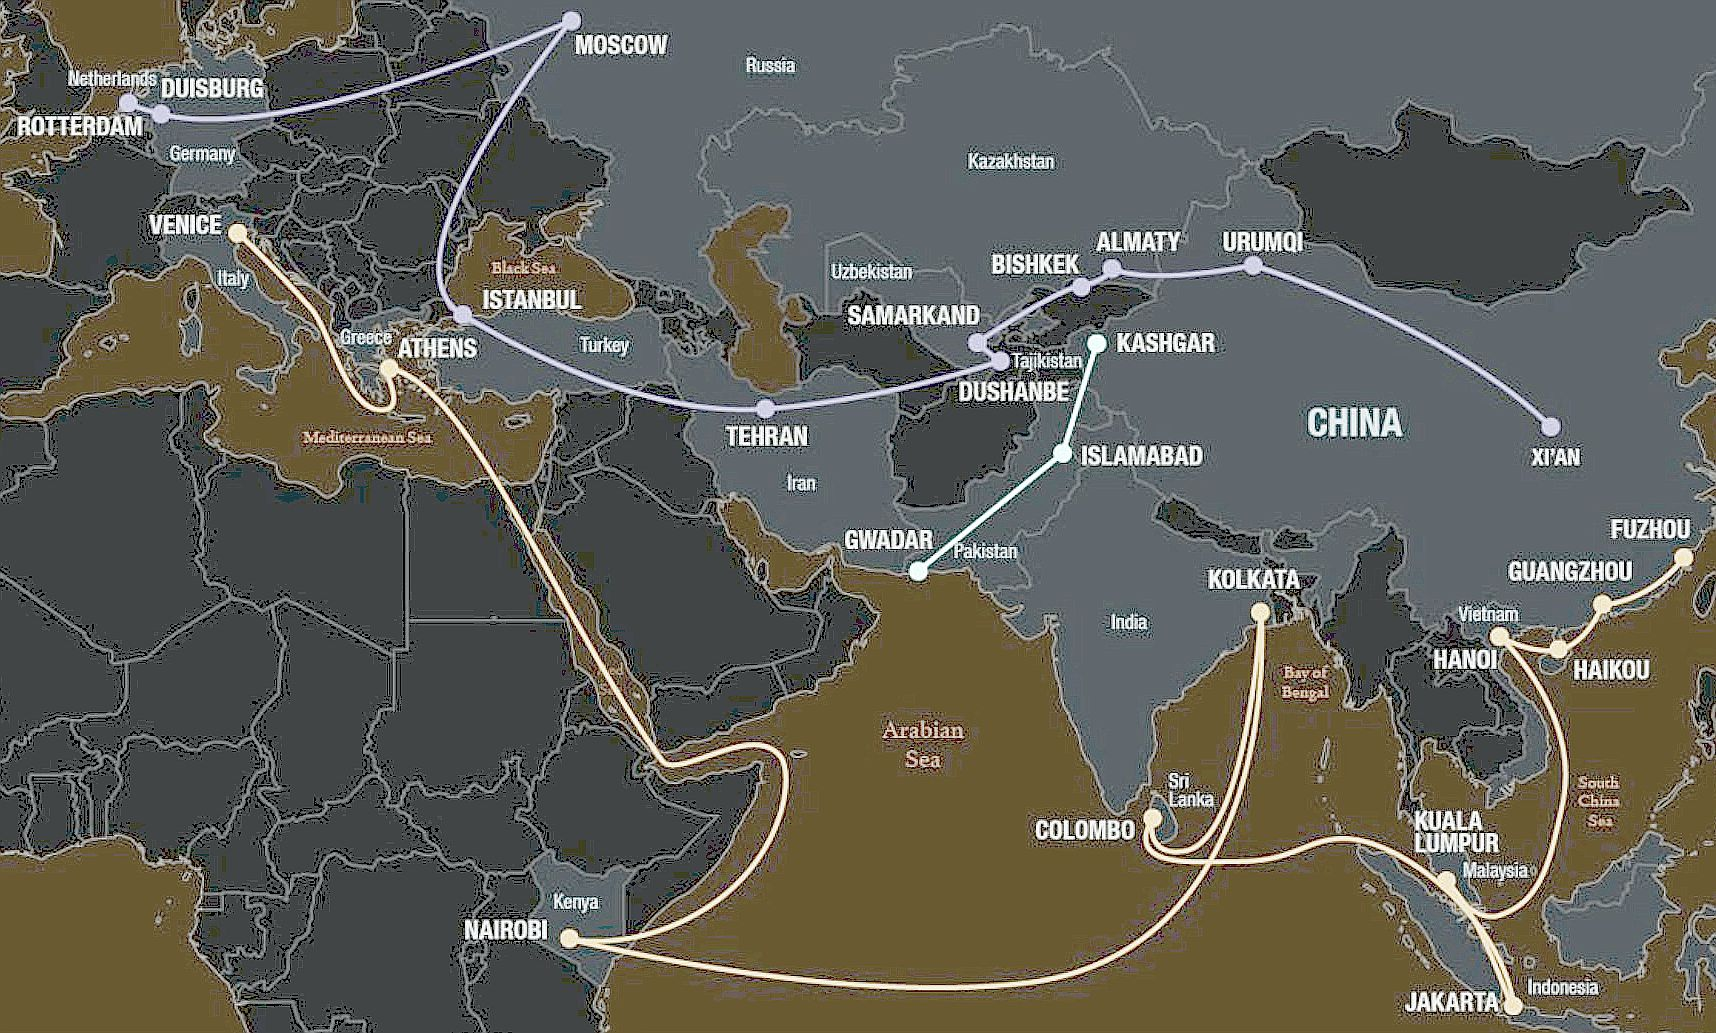 The G.C.C. Countries and China's Belt and Road Initiative (BRI): Curbing Their Enthusiasm?